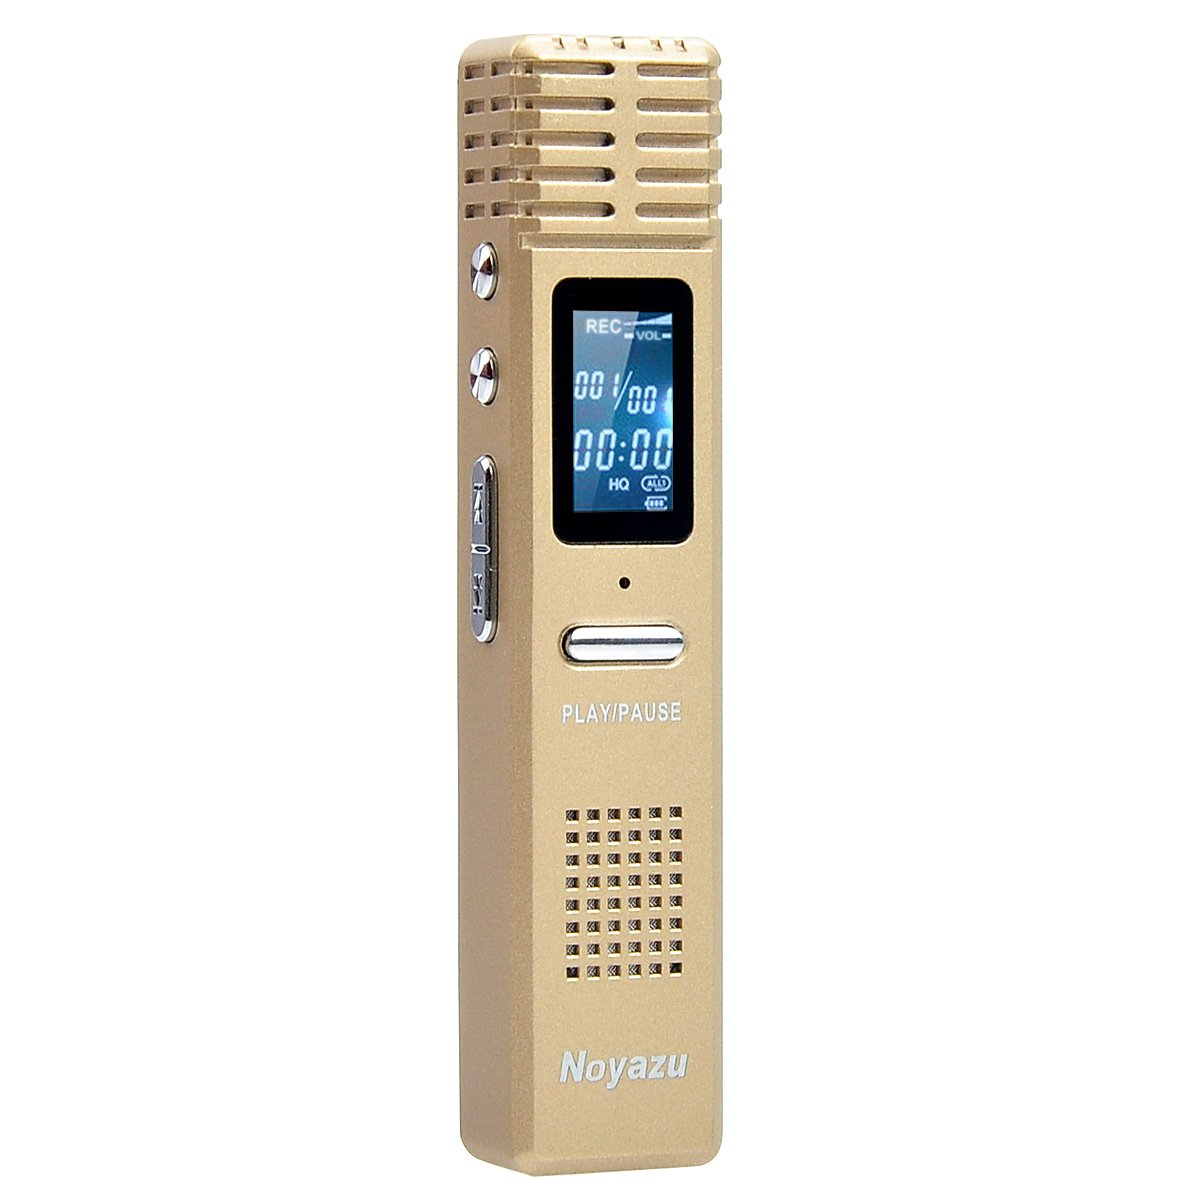 Noyazu X1 HD Digital Voice Activated One-Touch Voice Recorder Audio Dictaphone Rechargeable MP3 Player Flash Drive with 16 GB for Classes Lectures Meetings Notes (Gold)